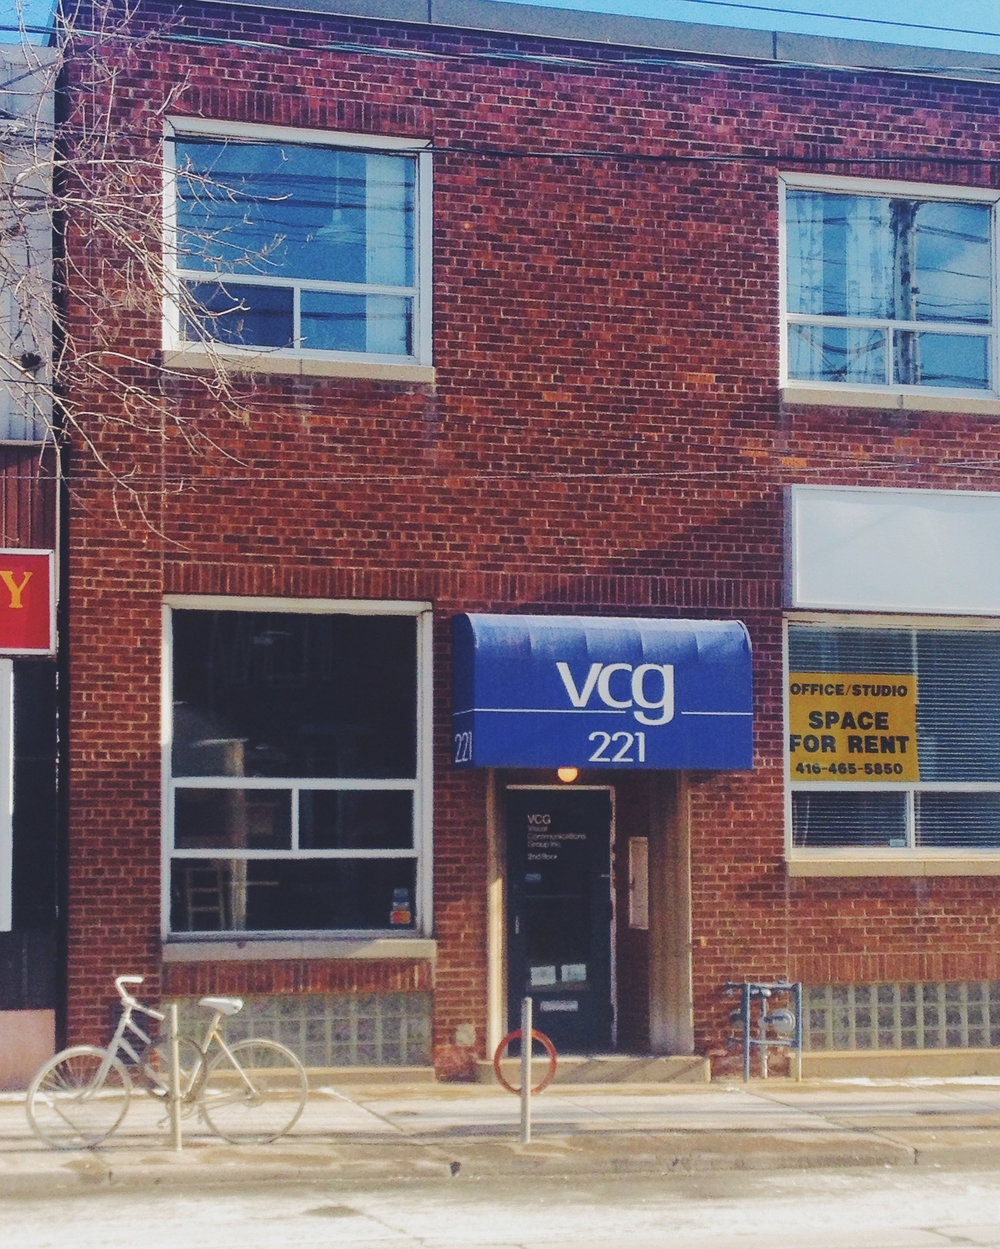 My office is in the VCG building at 221 Broadview Avenue in Toronto